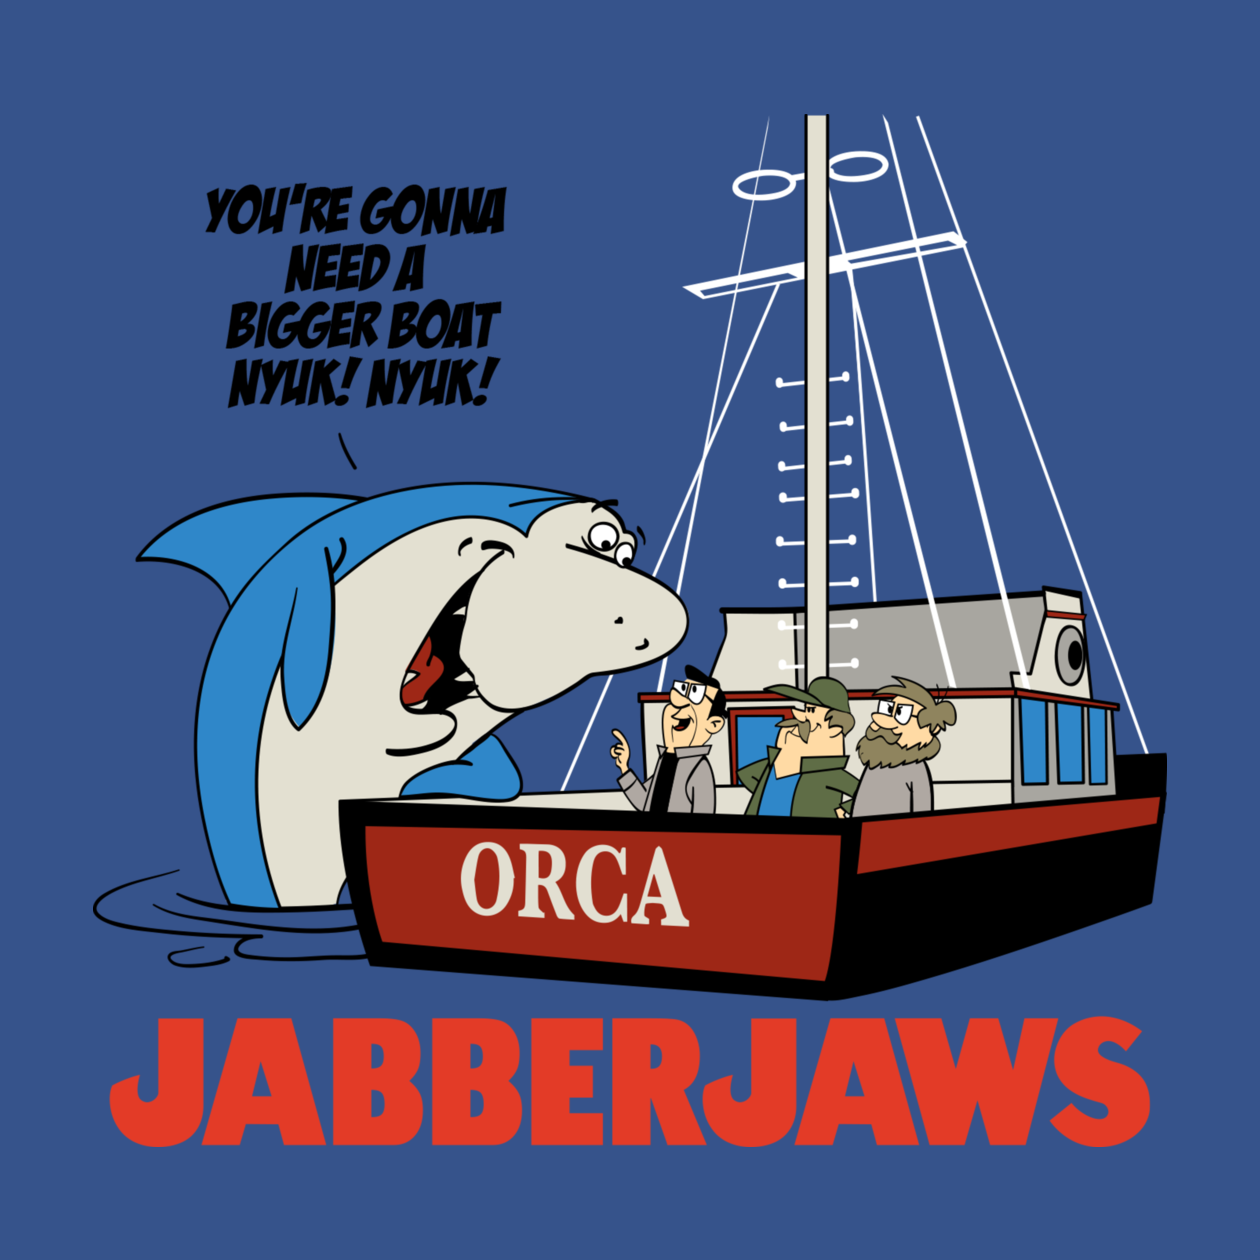 Check out this awesome 'JabberJaws' design on TeePublic! http://bit.ly/1xhFr4L